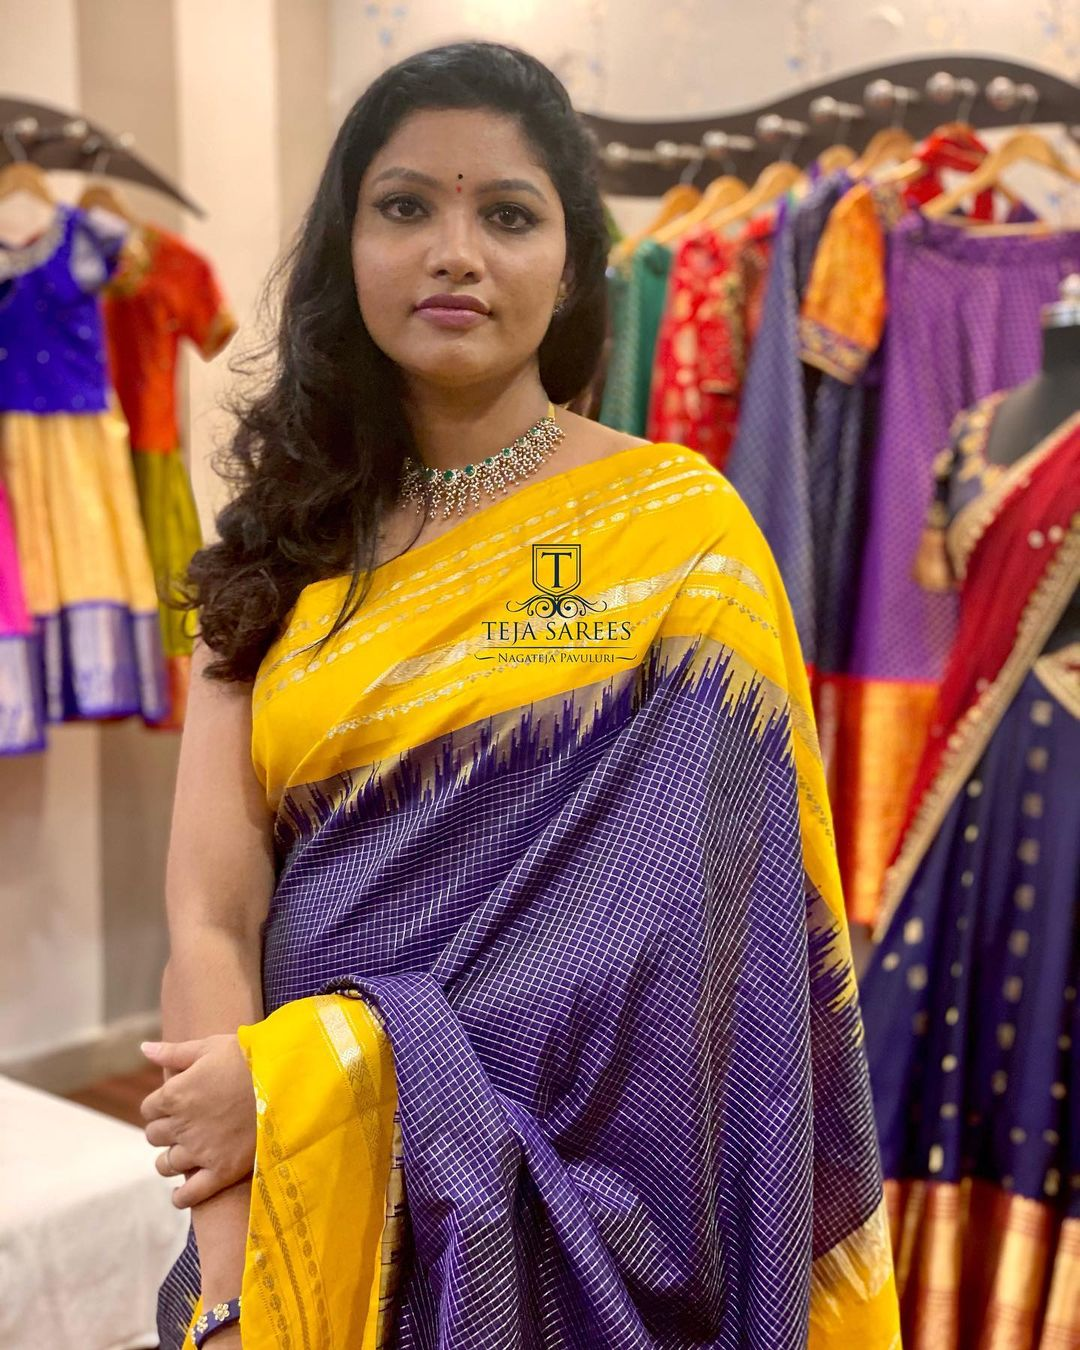 Beautiful designer Naga Teja in Gadwal pattu saree.